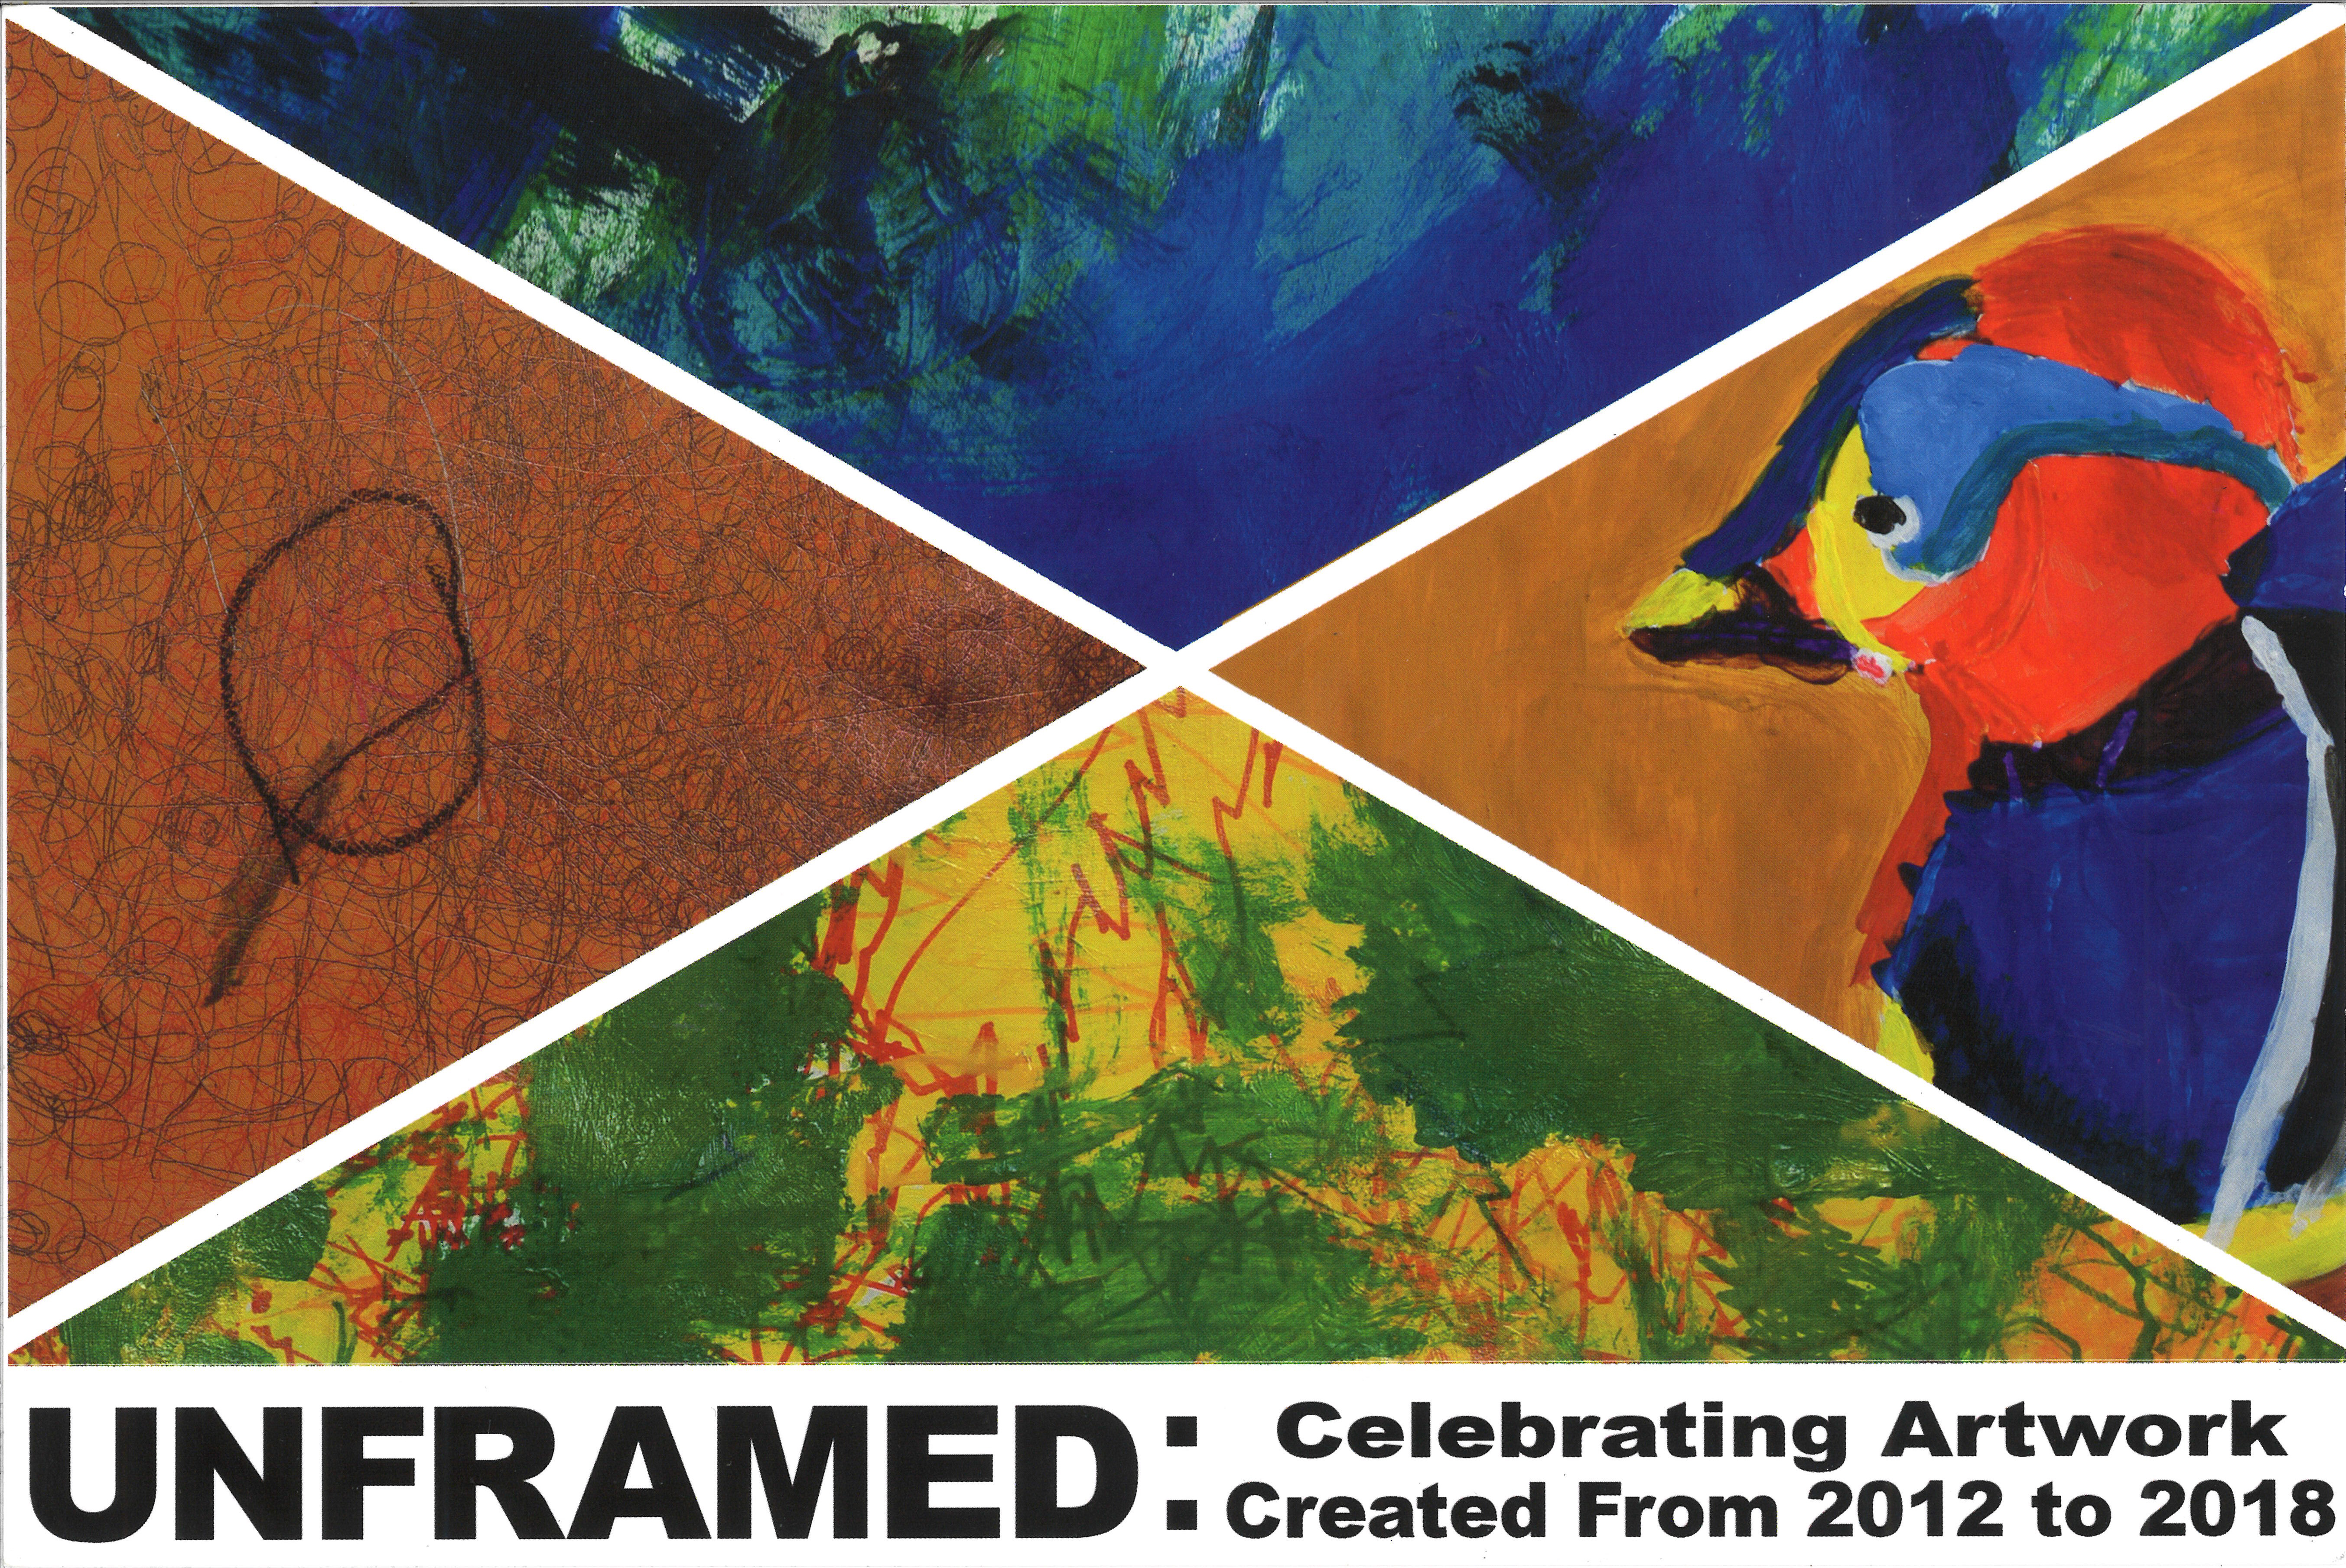 Unframed: Celebrating Artwork Created From 2012 to 2018